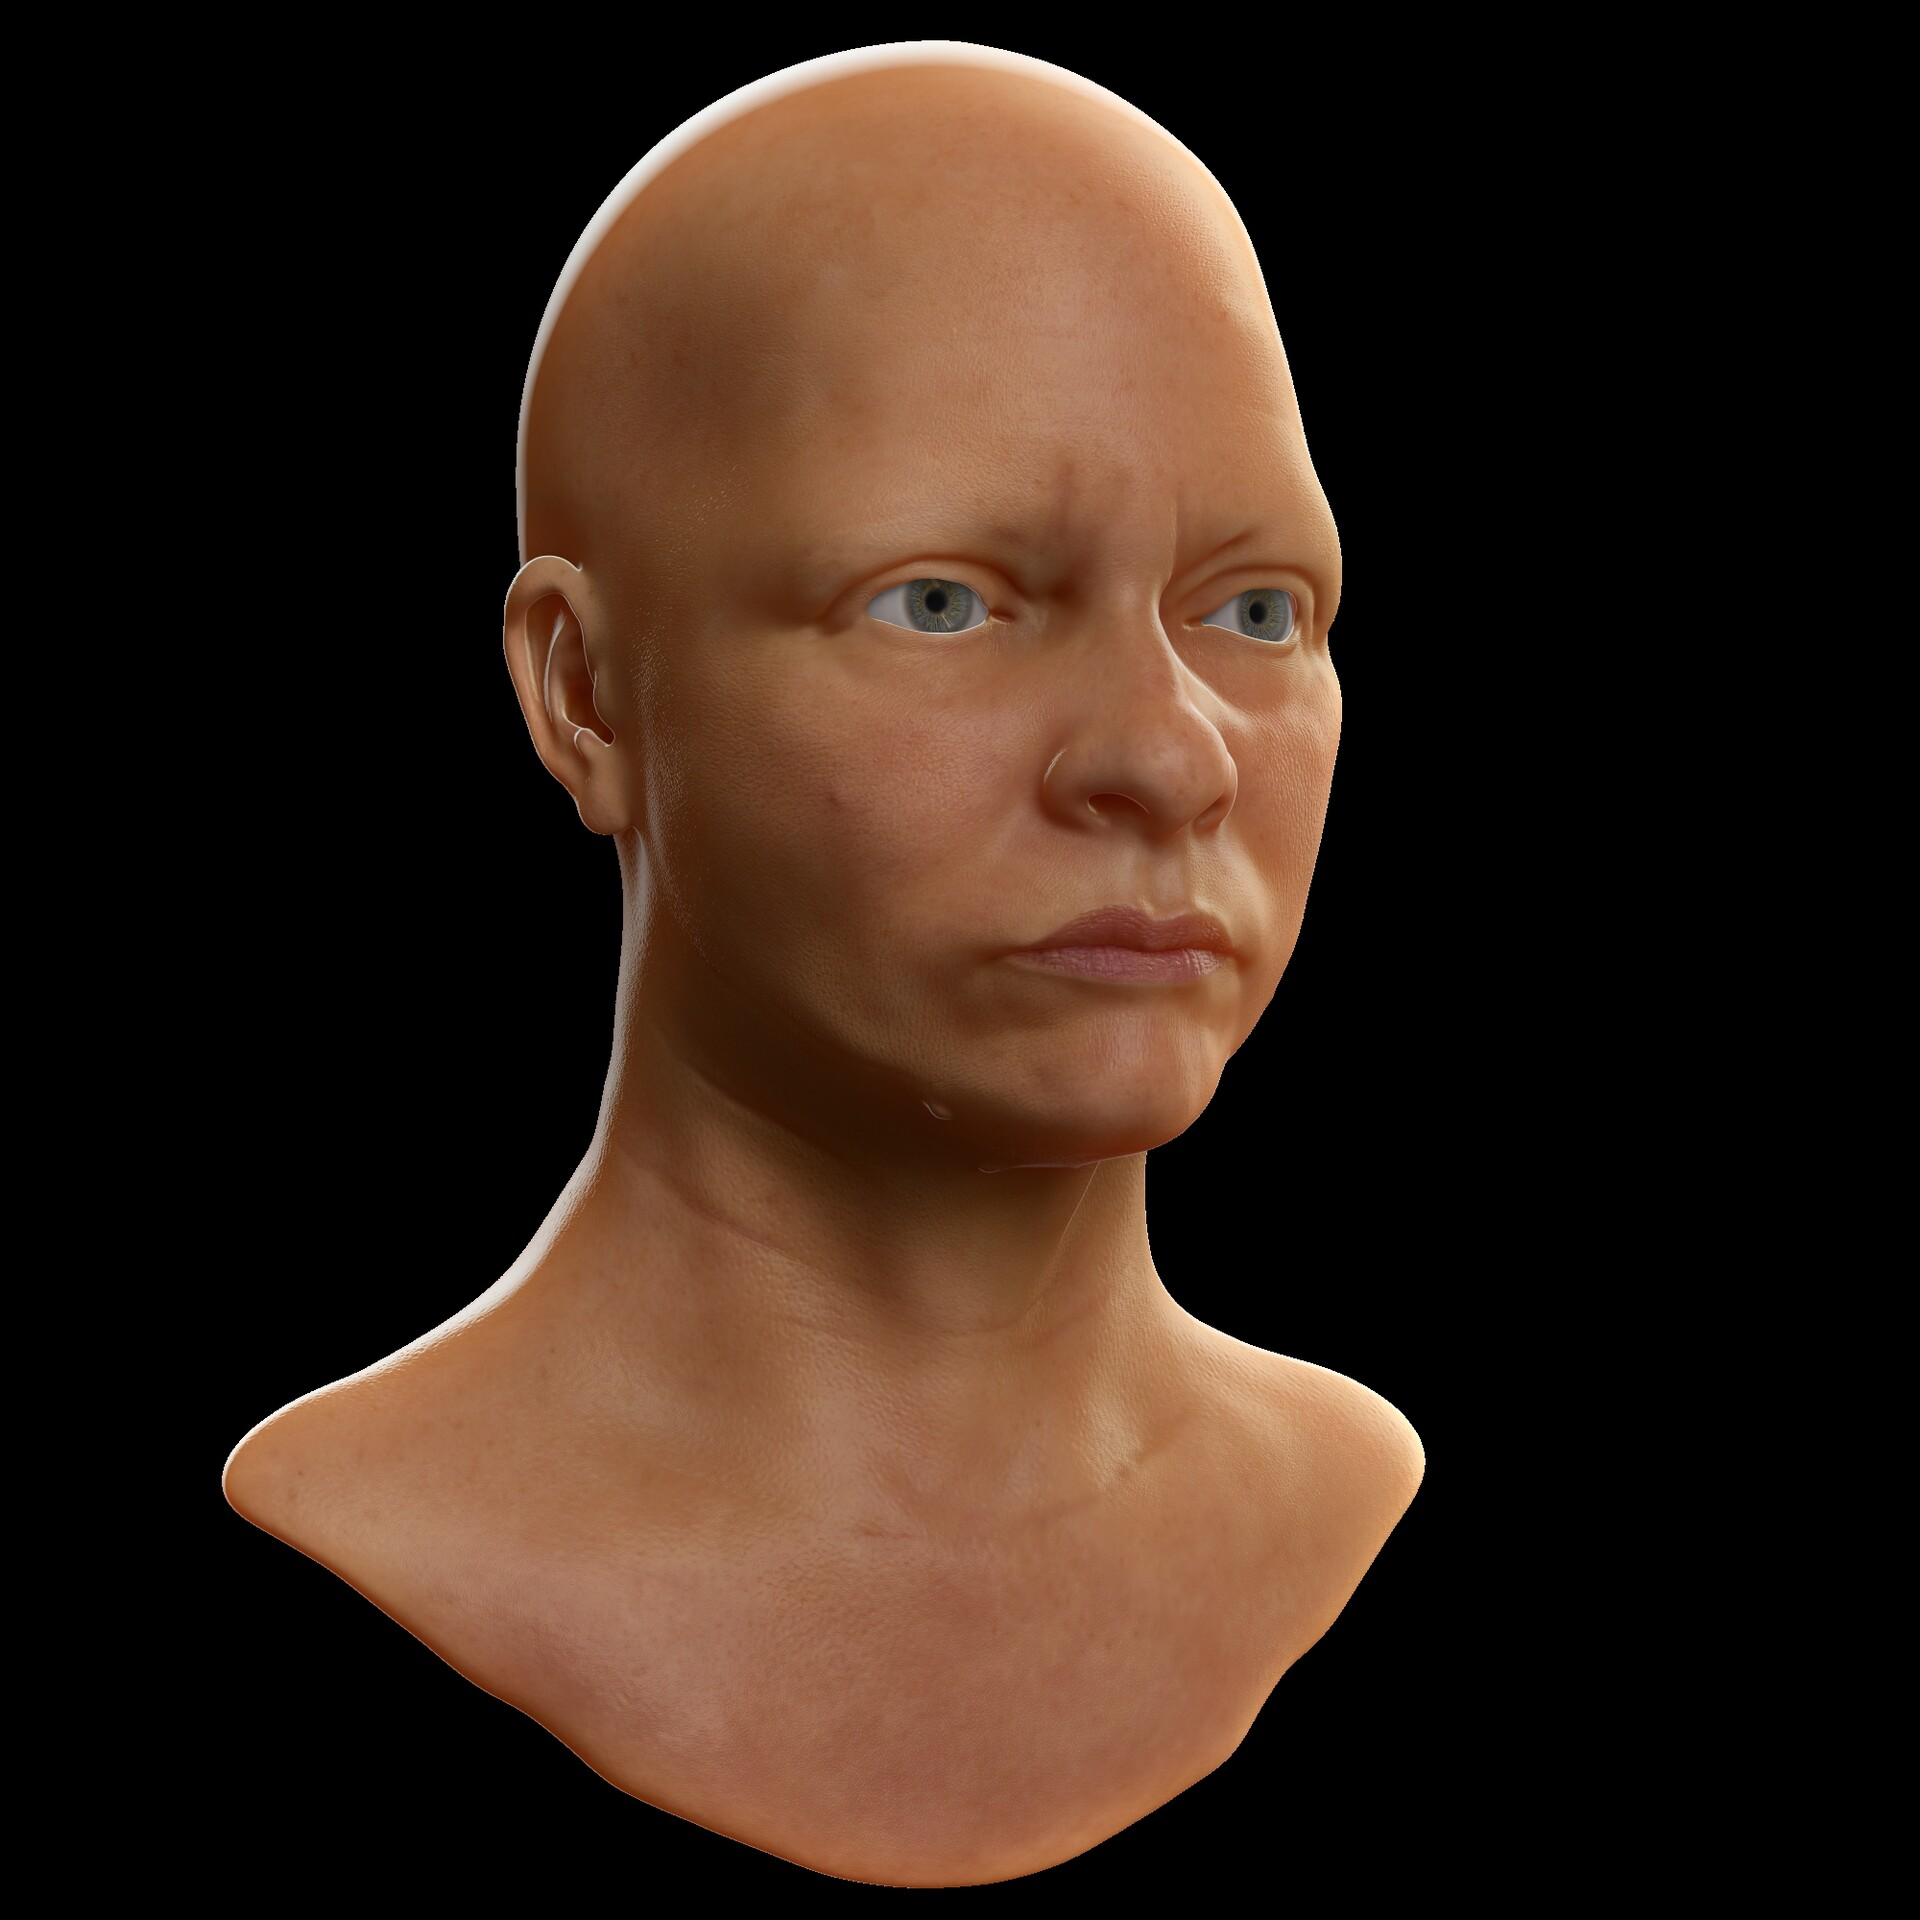 Added the right material for eyes and sclera and adjusted the lighting.